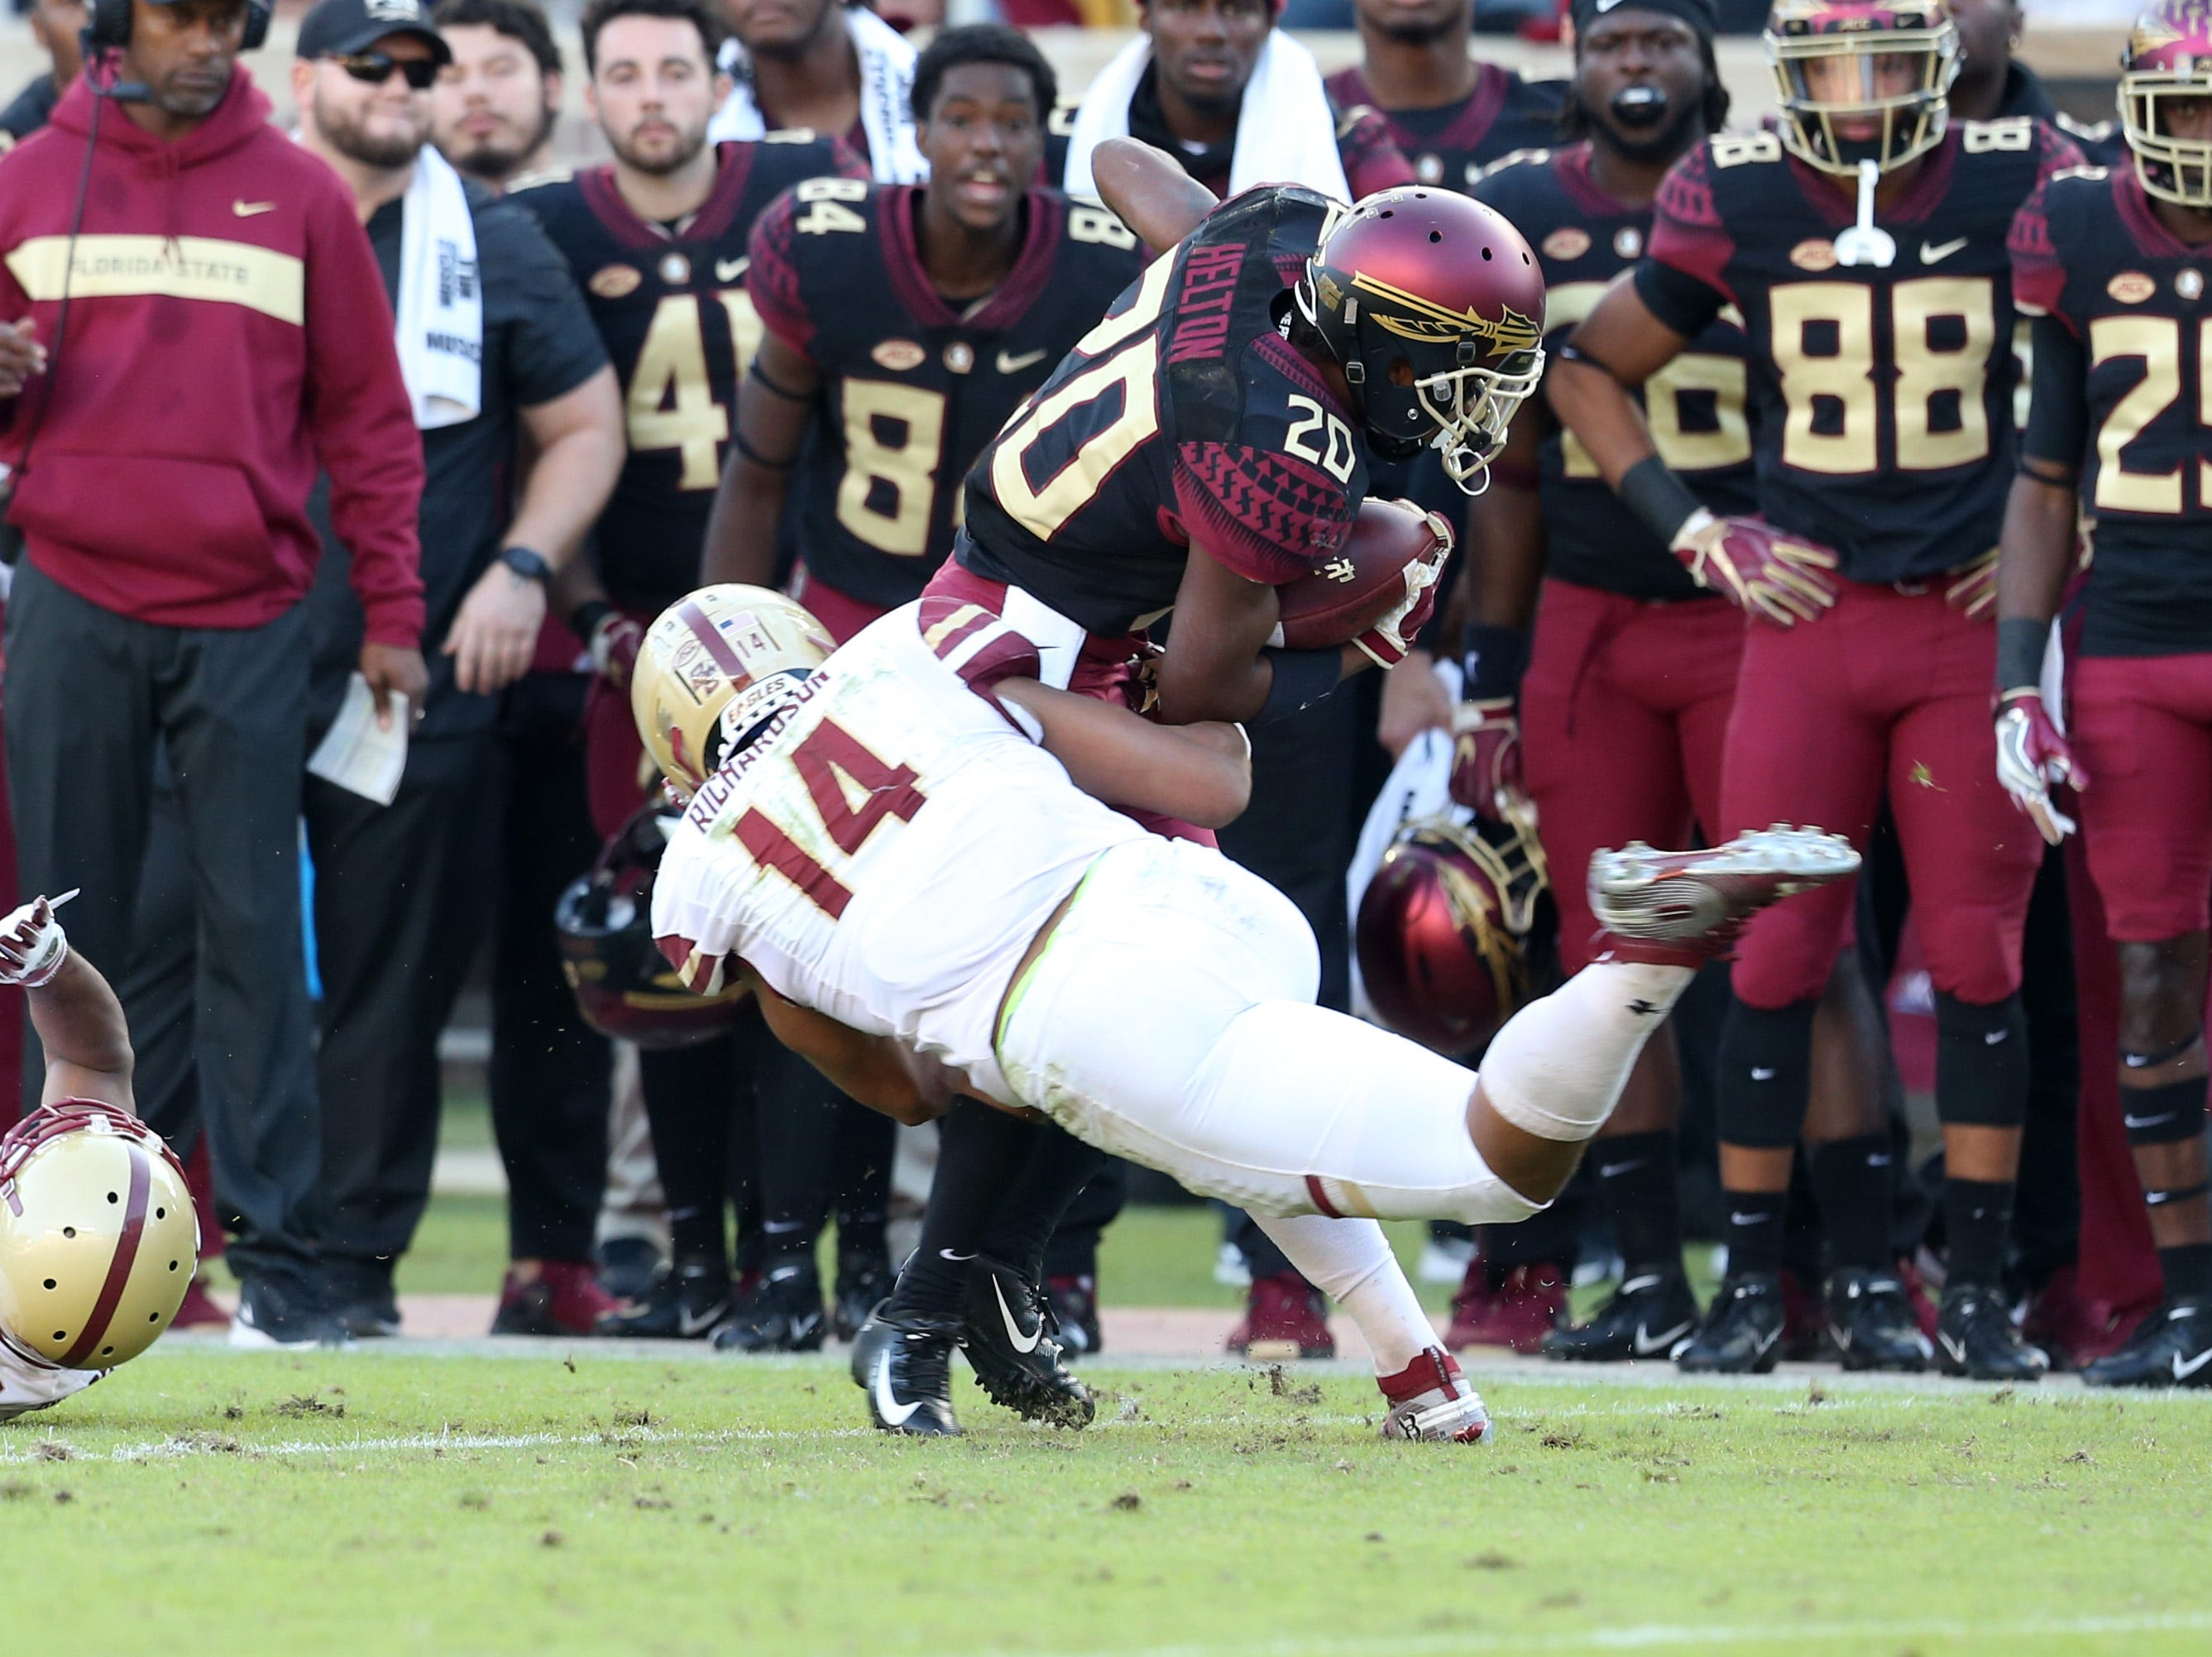 Florida State Seminoles wide receiver Keyshawn Helton (20) gets tackled by Boston College Eagles linebacker Max Richardson (14) as the Florida State Seminoles face off against the Boston College Eagles at Doak S. Campbell Stadium, Saturday, Nov. 17, 2018.